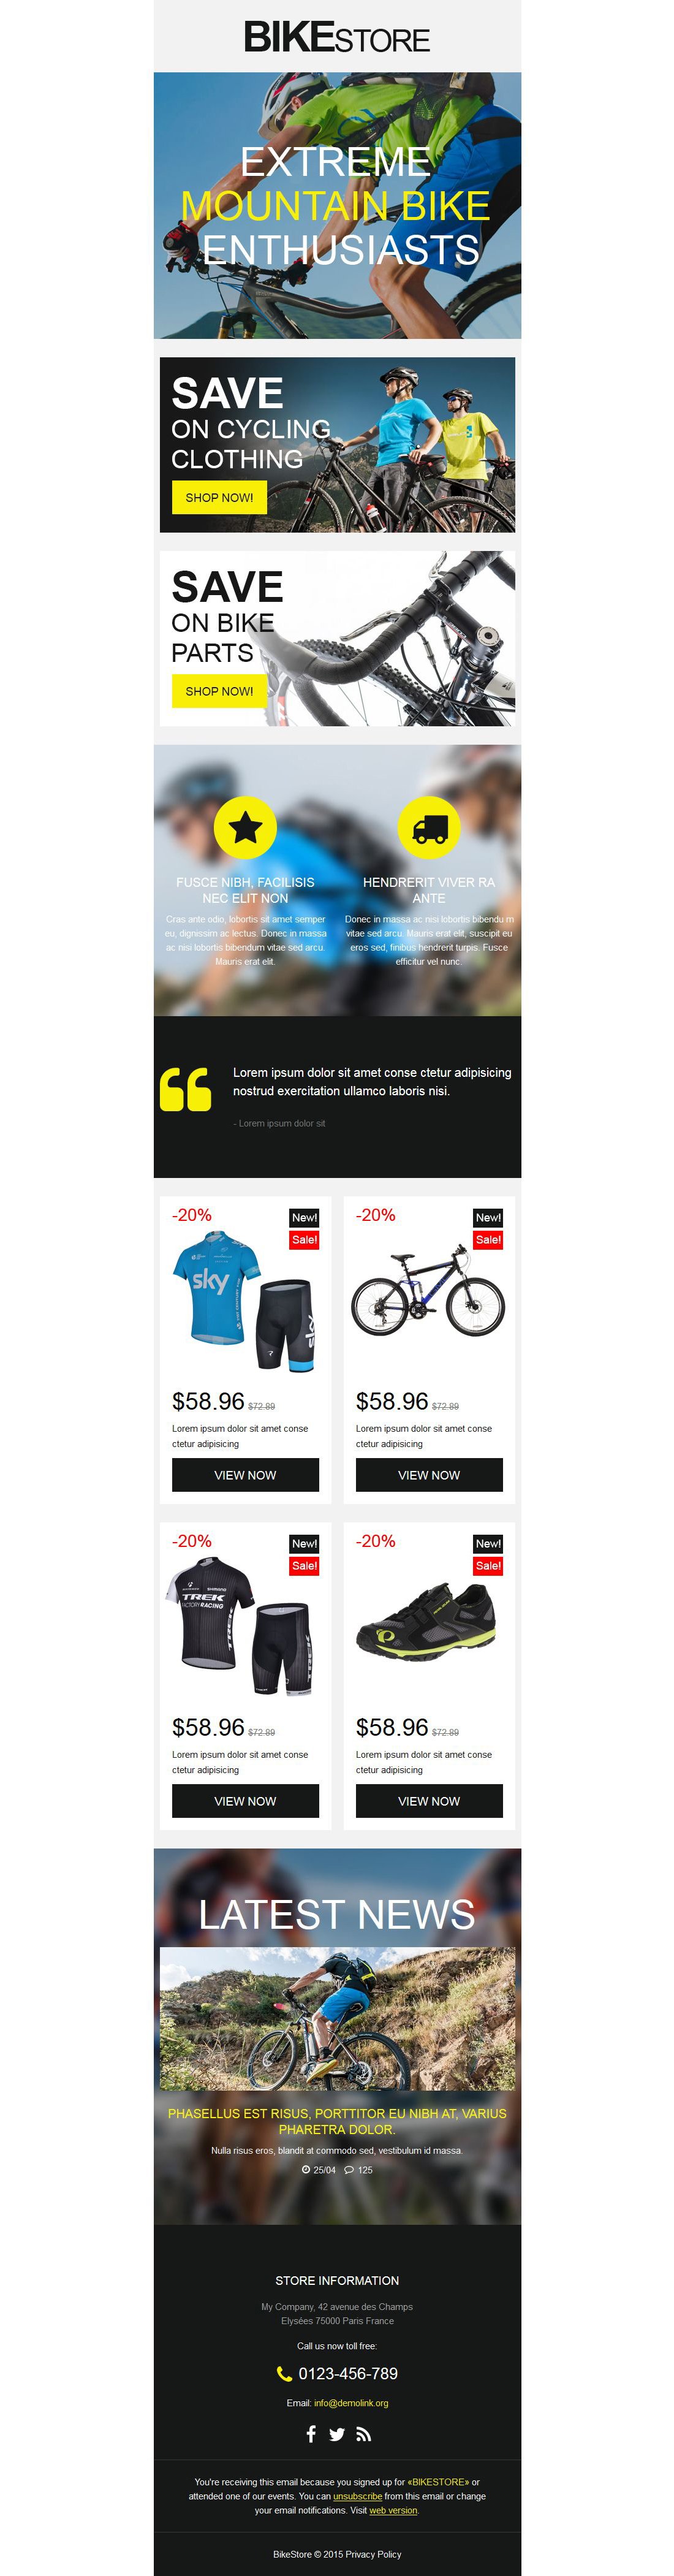 The Bike Store Newsletter Template Design 53851, one of the best Newsletter templates of its kind (sport, most popular), also known as bike store Newsletter template, bikes Newsletter template, moto Newsletter template, motor store Newsletter template, helmets Newsletter template, gear Newsletter template, scooter Newsletter template, snowmobile Newsletter template, parts Newsletter template, accessories Newsletter template, tires Newsletter template, closeouts and related with bike store, bikes, moto, motor store, helmets, gear, scooter, snowmobile, parts, accessories, tires, closeouts, etc.